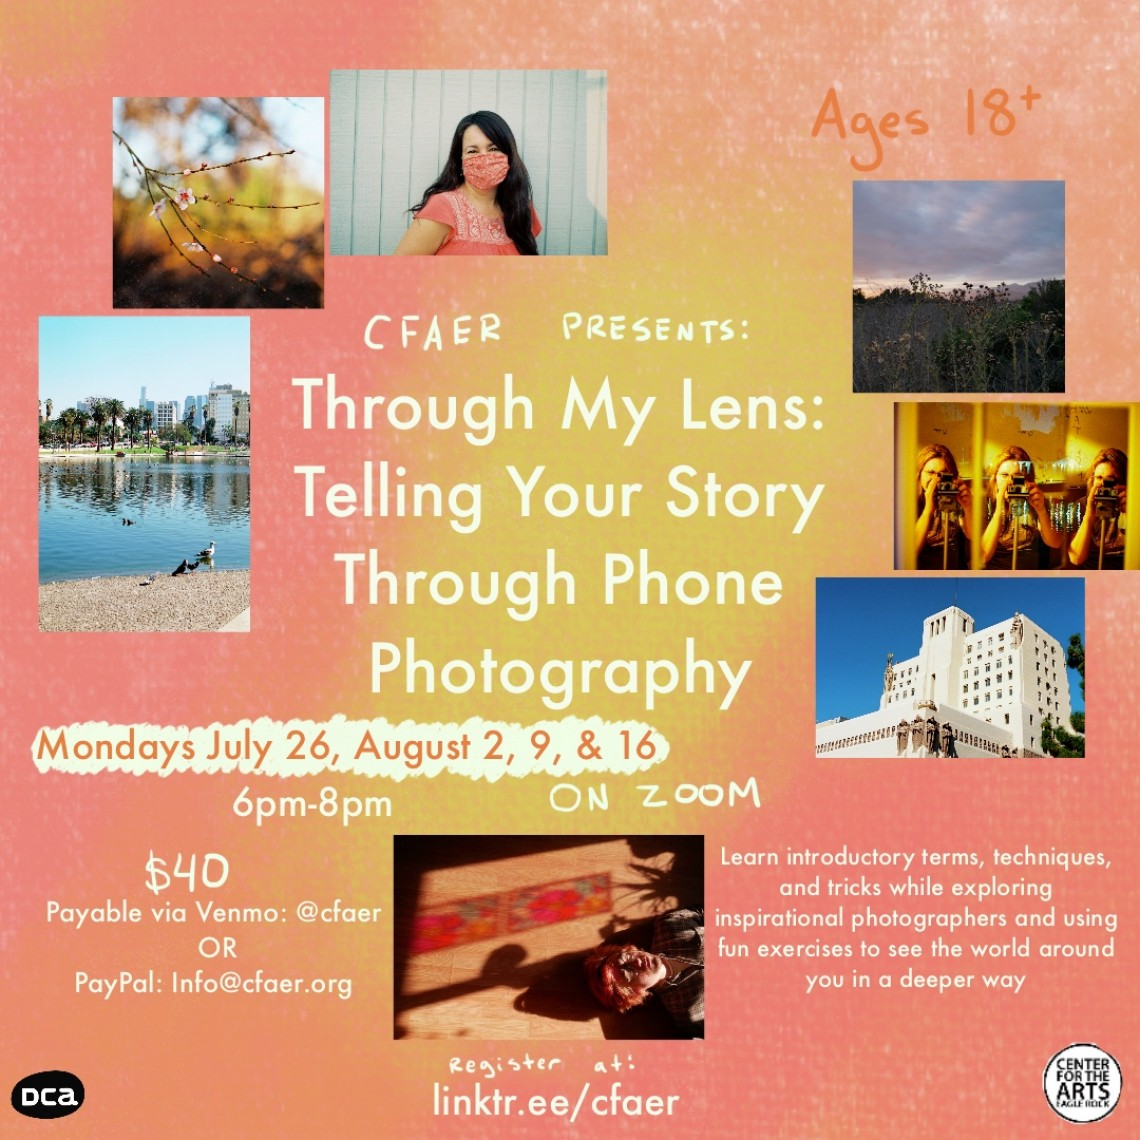 Through My Lens: Telling Your Story Through Phone Photography